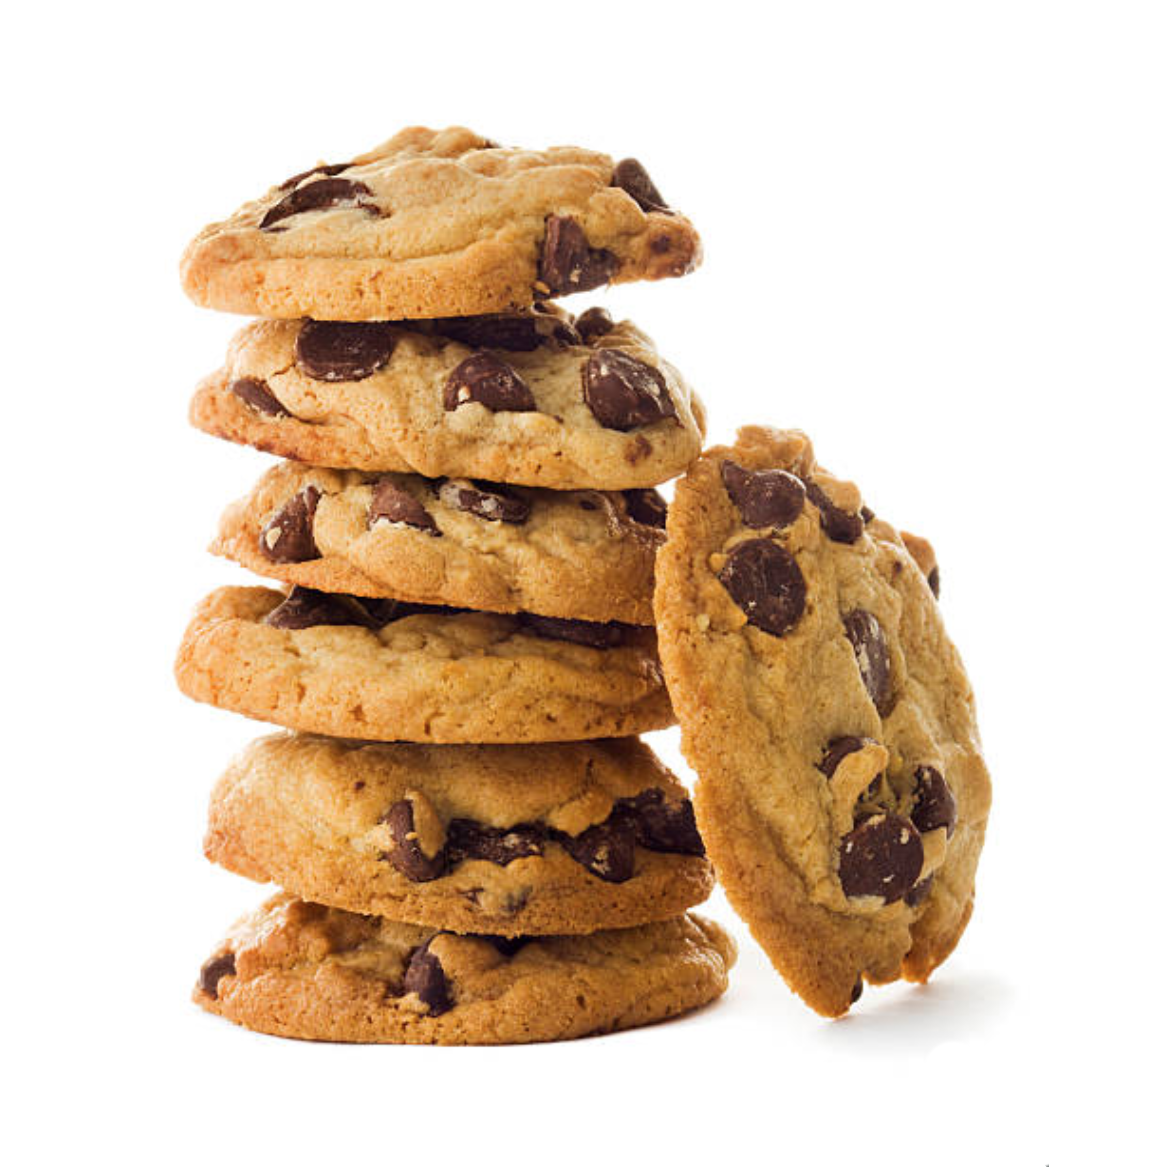 The Absolute Best Chocolate Chip Cookies